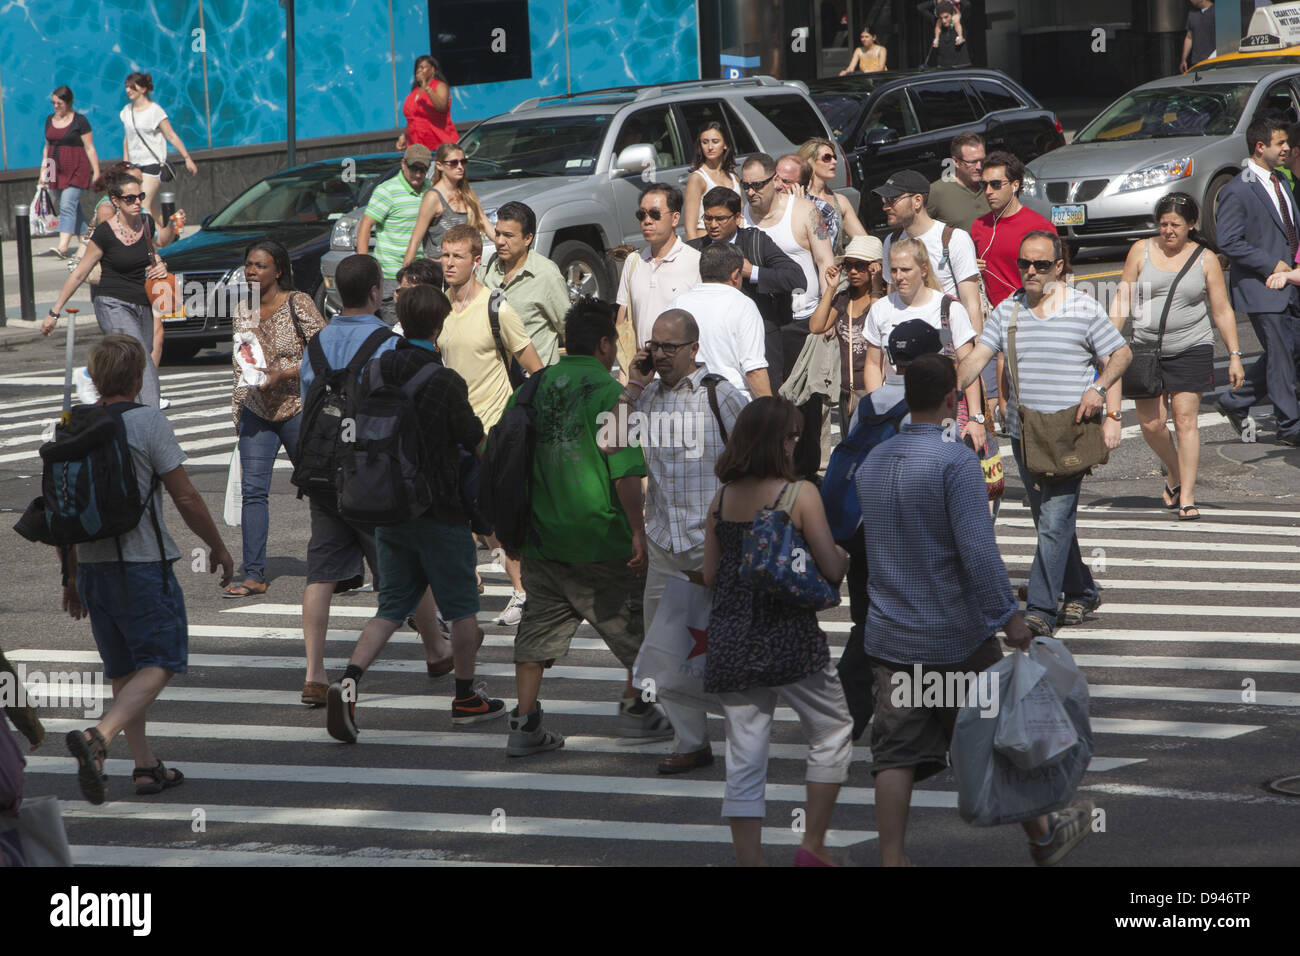 The corner of 42nd St. and 5th Avenue is always crowded with New Yorkers and tourists in midtown Manhattan. - Stock Image